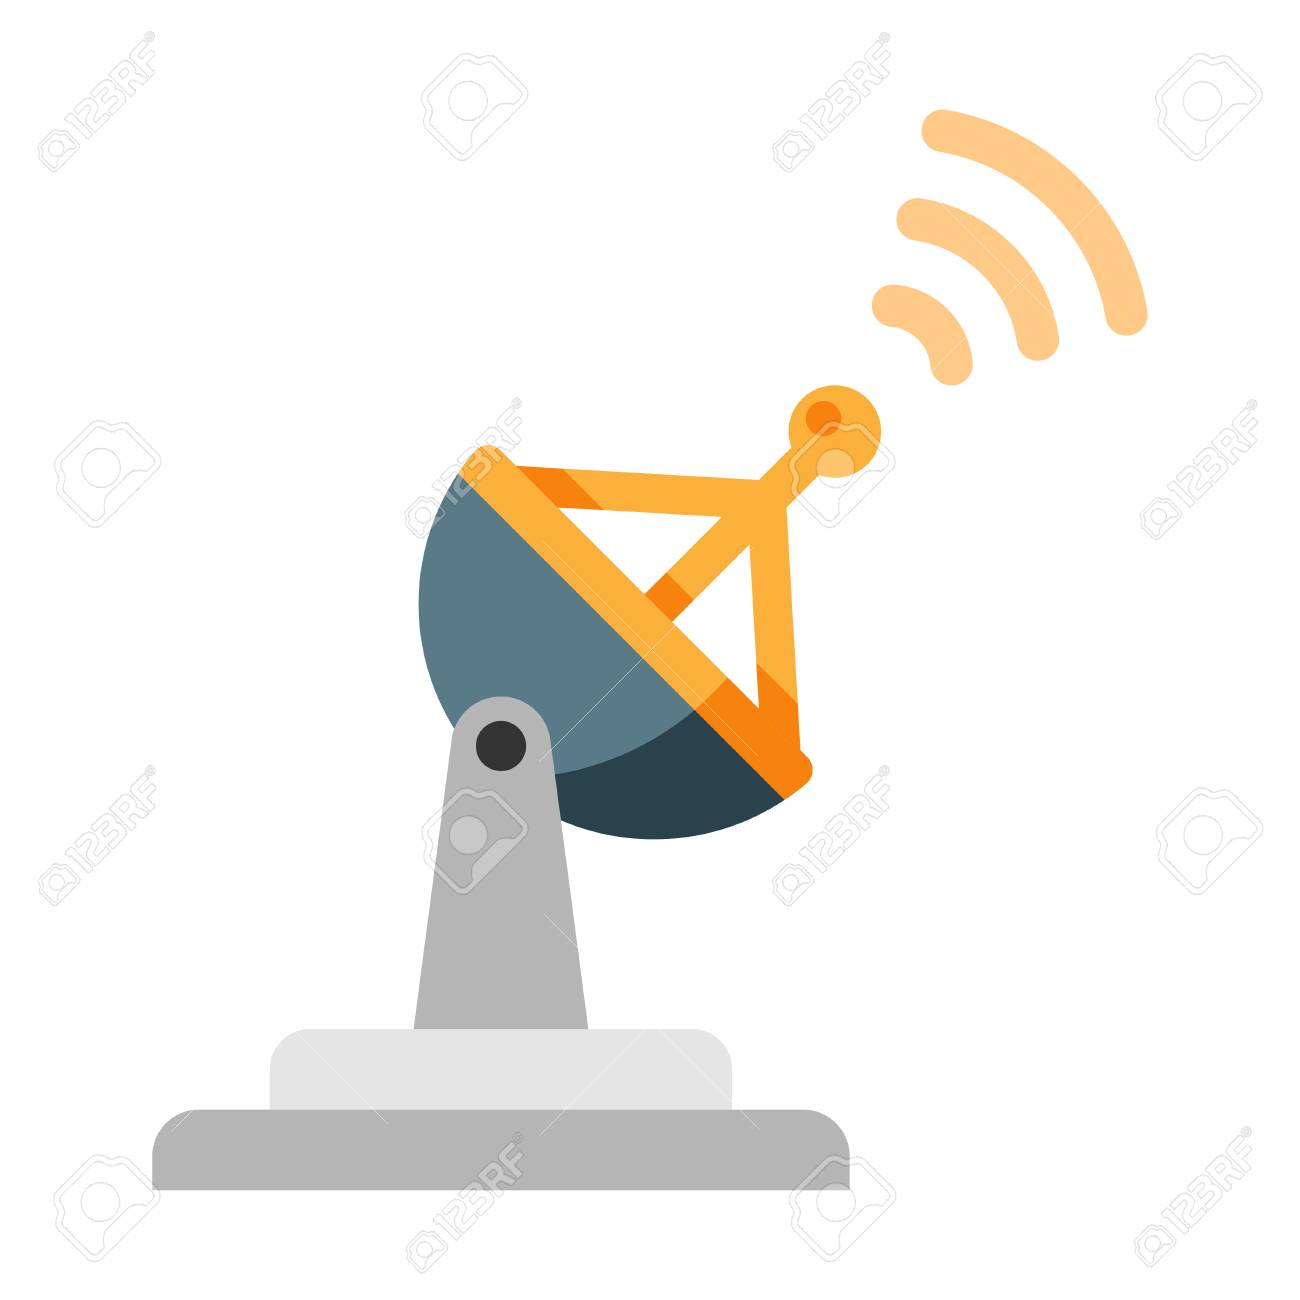 Radar with signal icon vector illustration in flat color design - 111955697